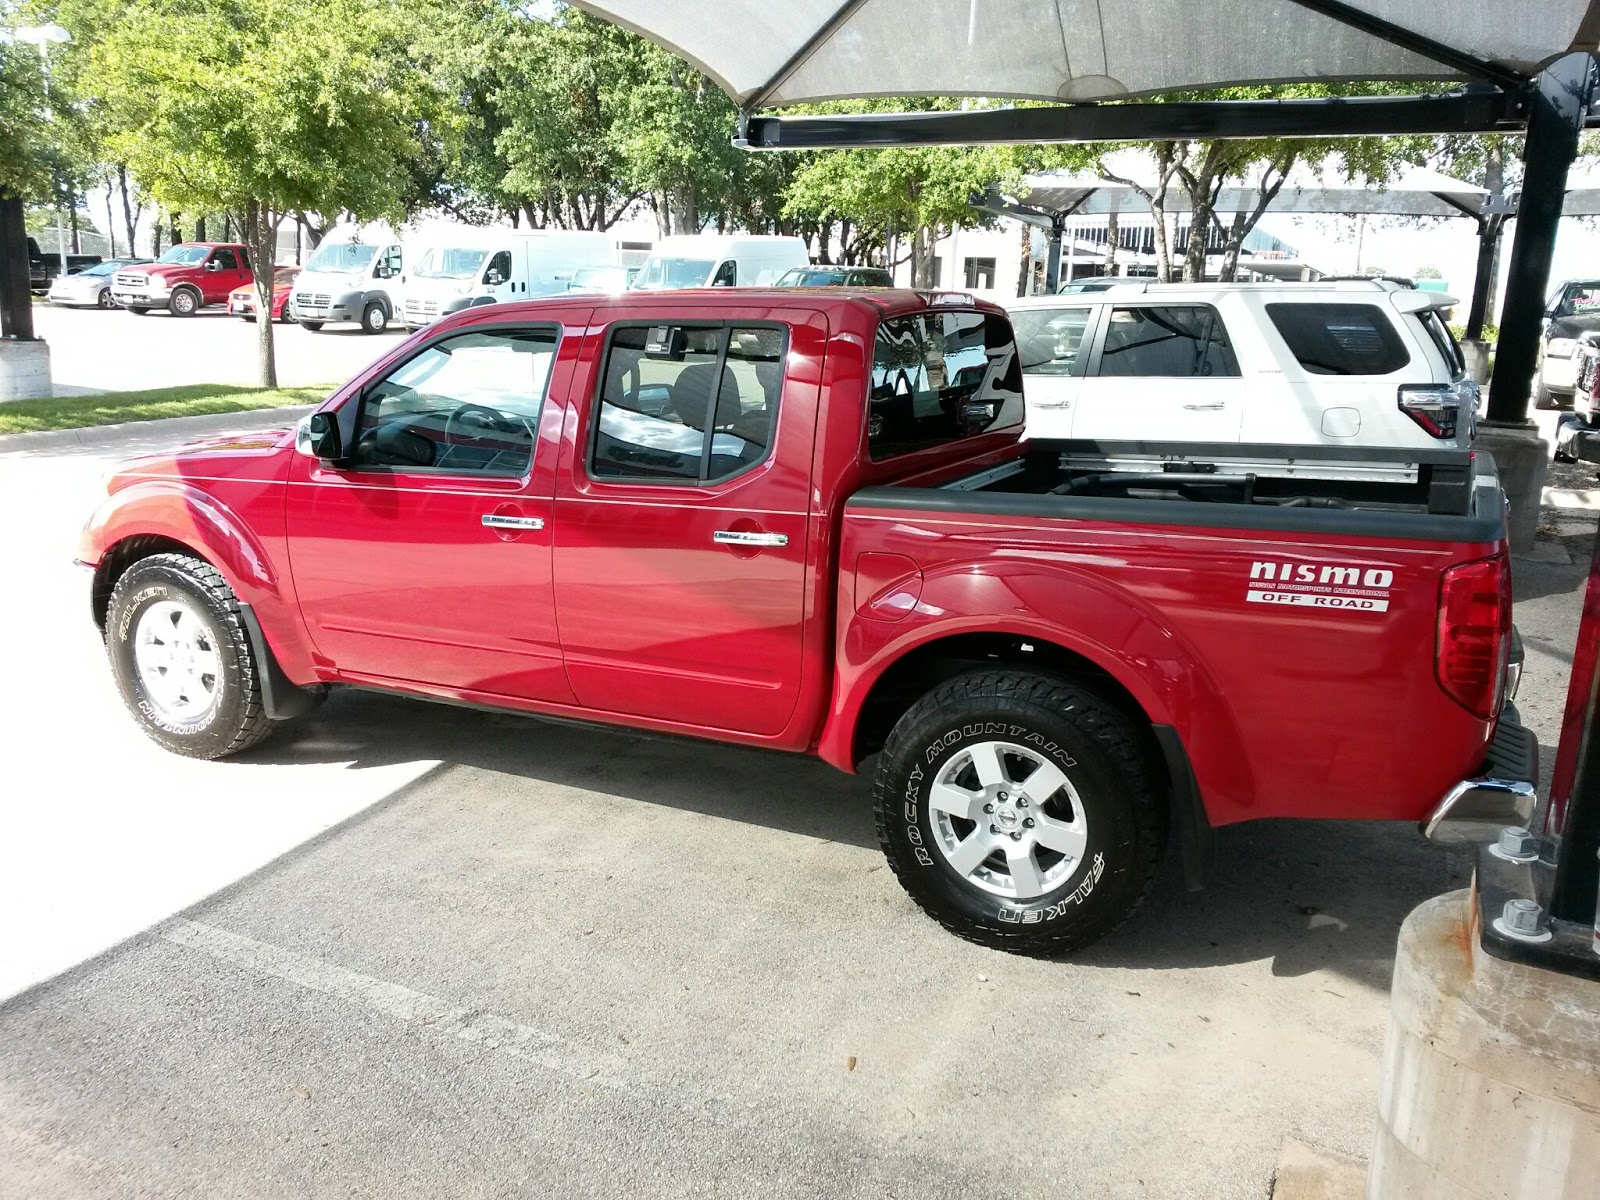 2005 Nissan Frontier 4X4 For Sale photos